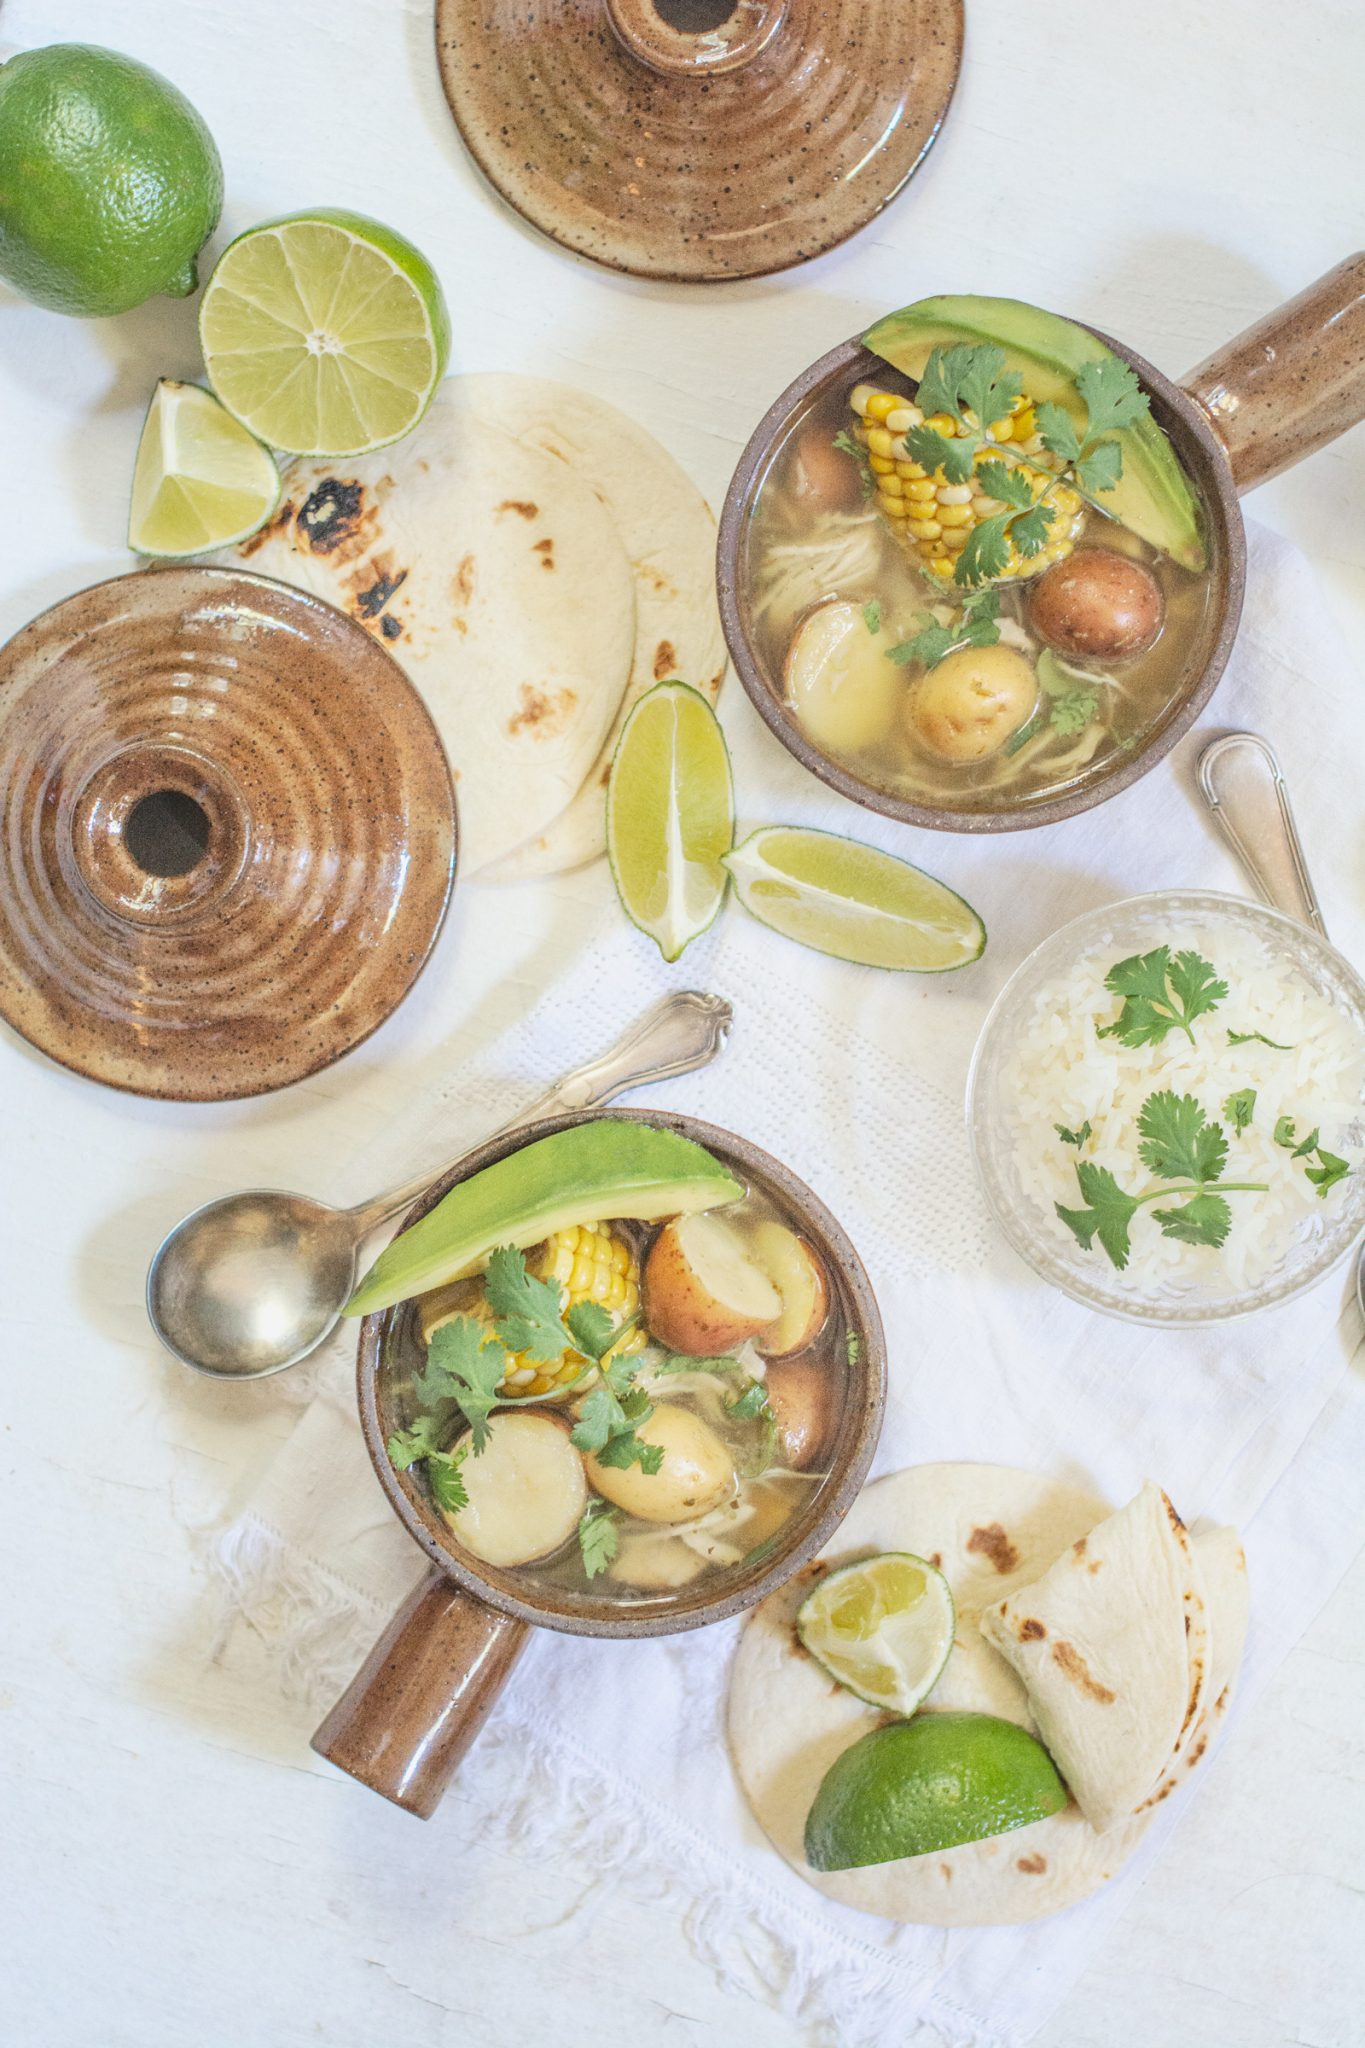 Ajiaco recipe; Colombian Chicken Corn and Potato Stew served on a white table with tortillas, limes and bowls of rice.